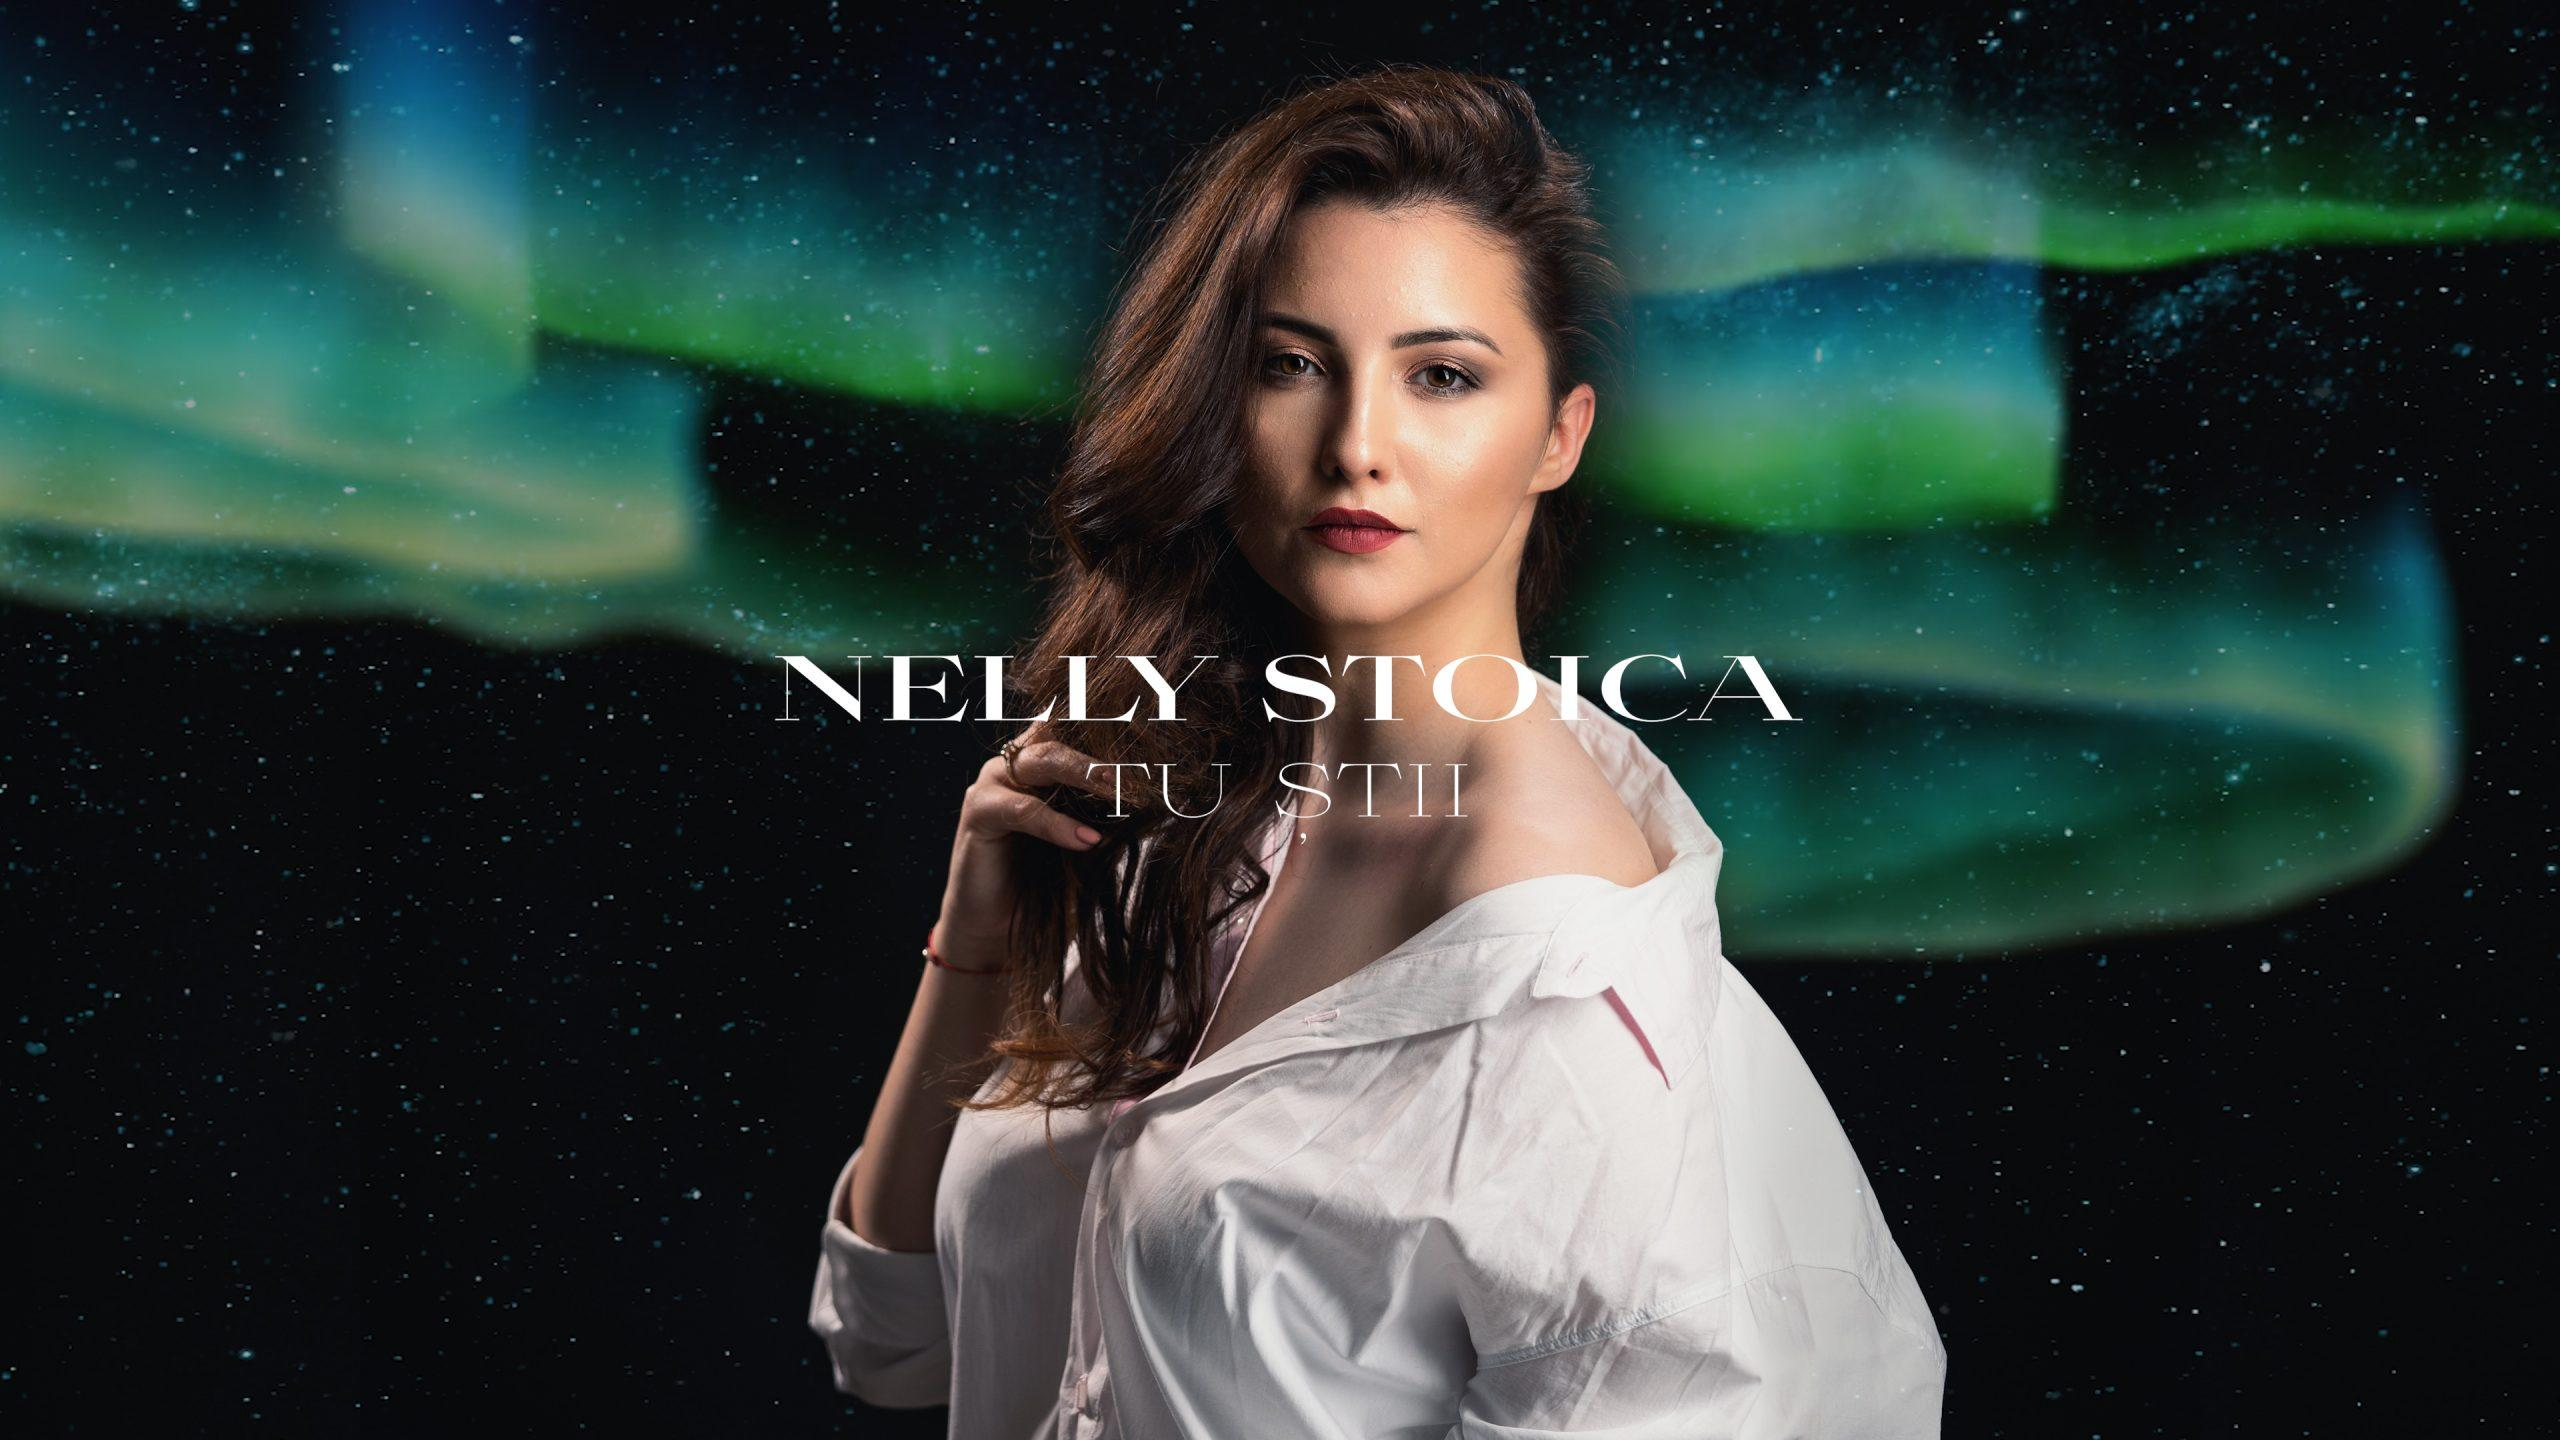 Nelly Stoica